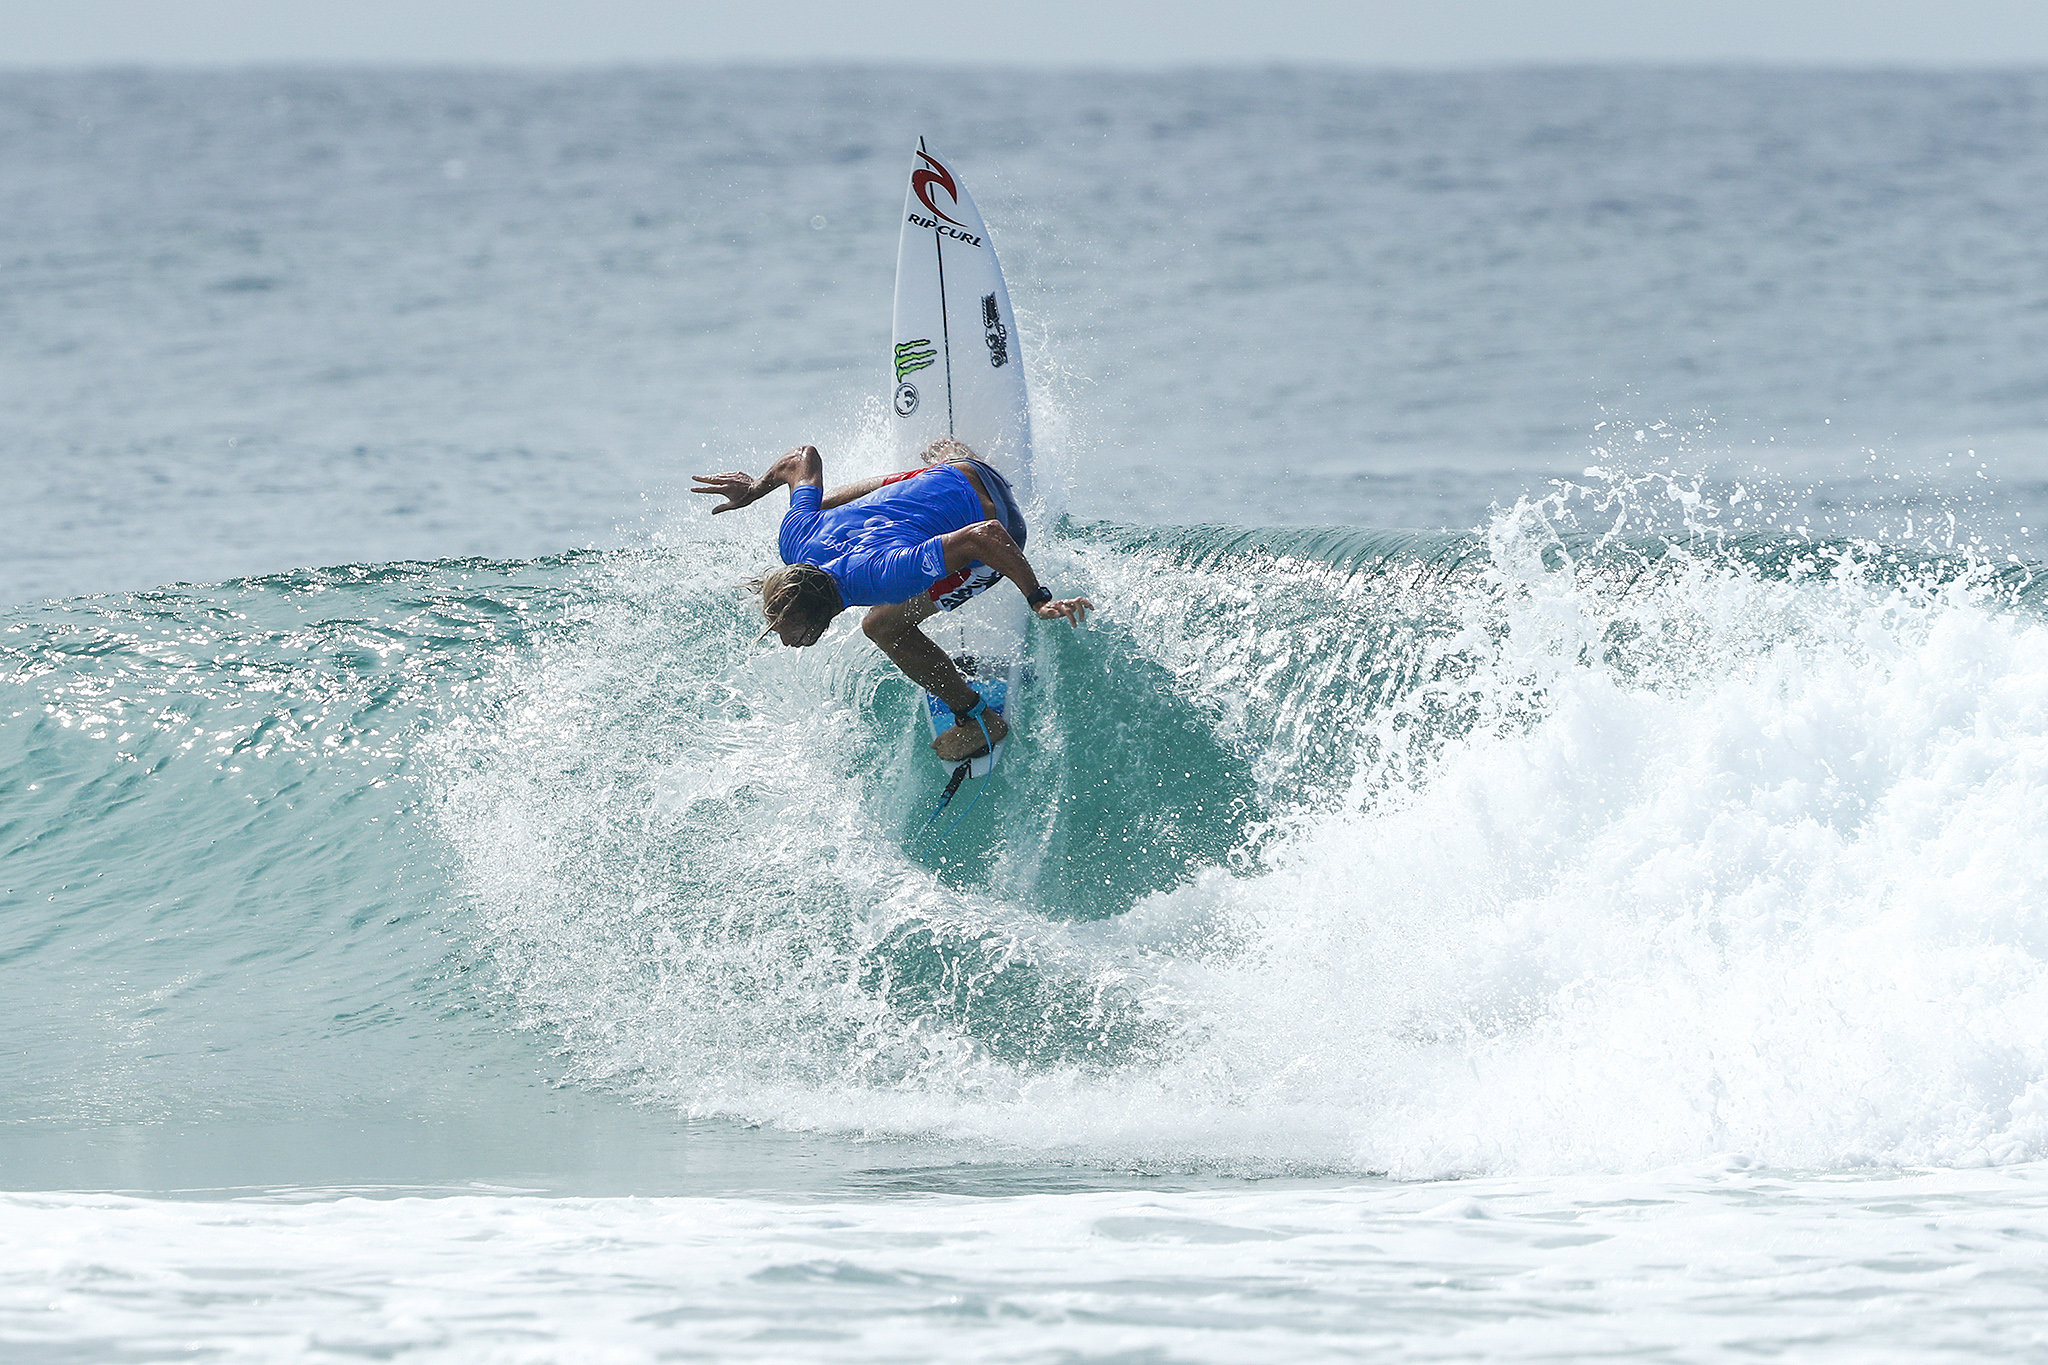 Owen Wright of Australia made a stellar return to Championship Tour competition after a year off due to brain injury by winning Heat 12 of Round One at the Quik Pro Gold Coast, Australia,